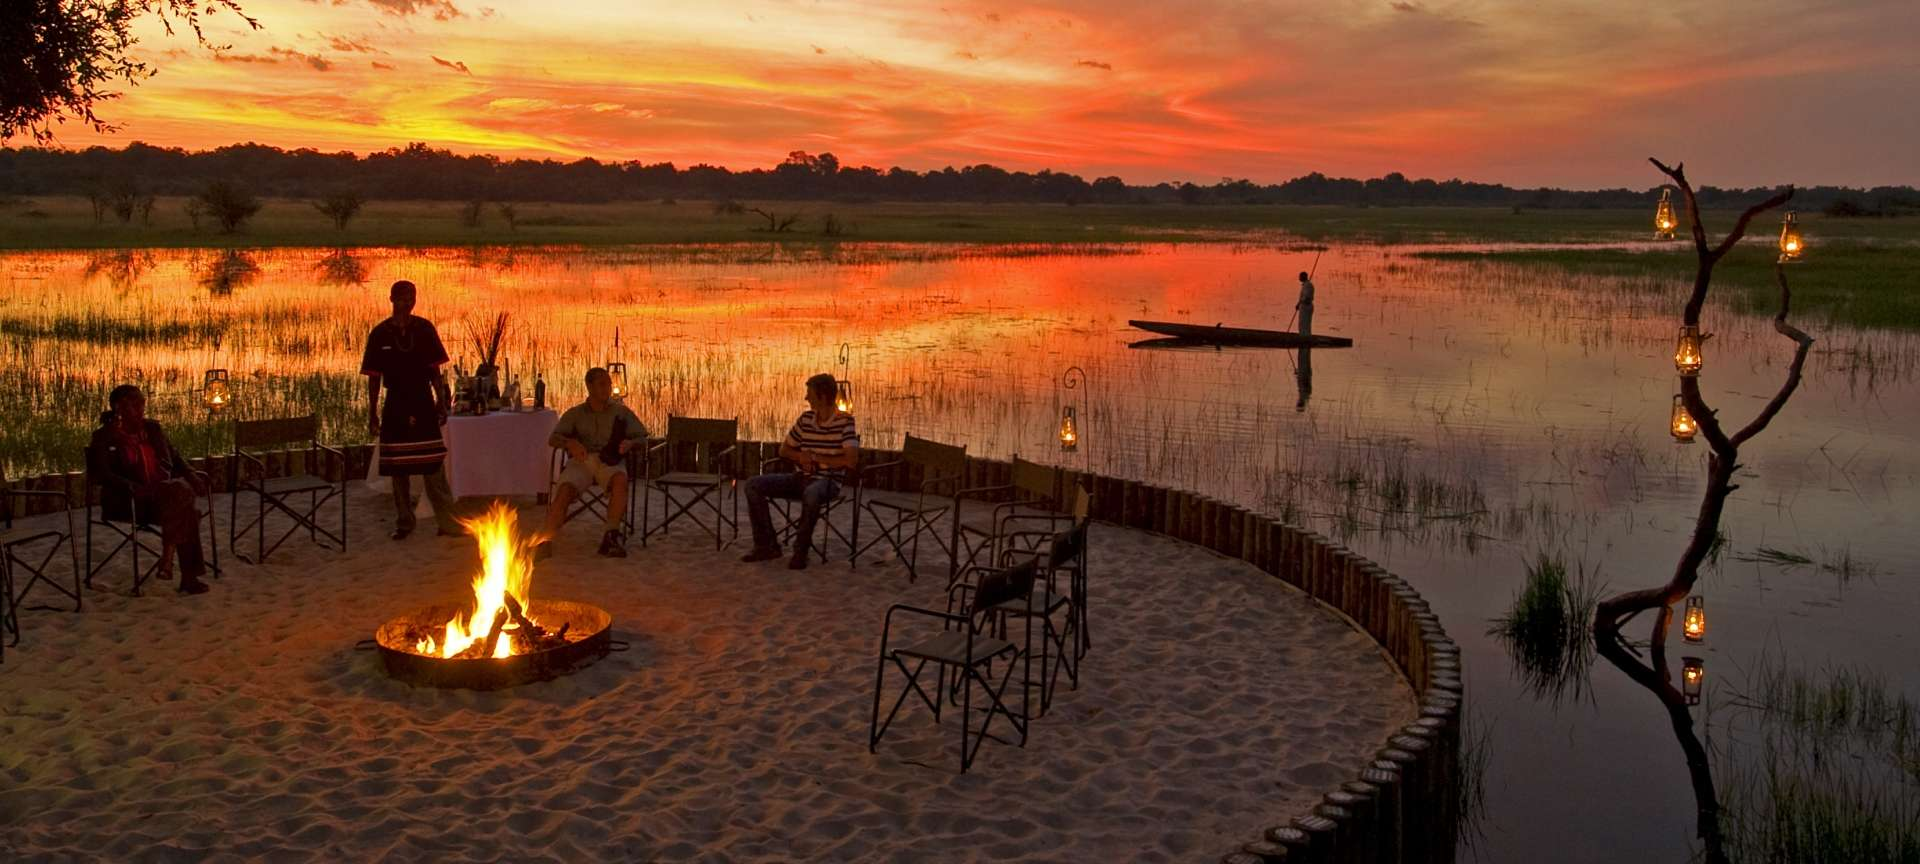 Chief's Island - Africa Wildlife Safaris